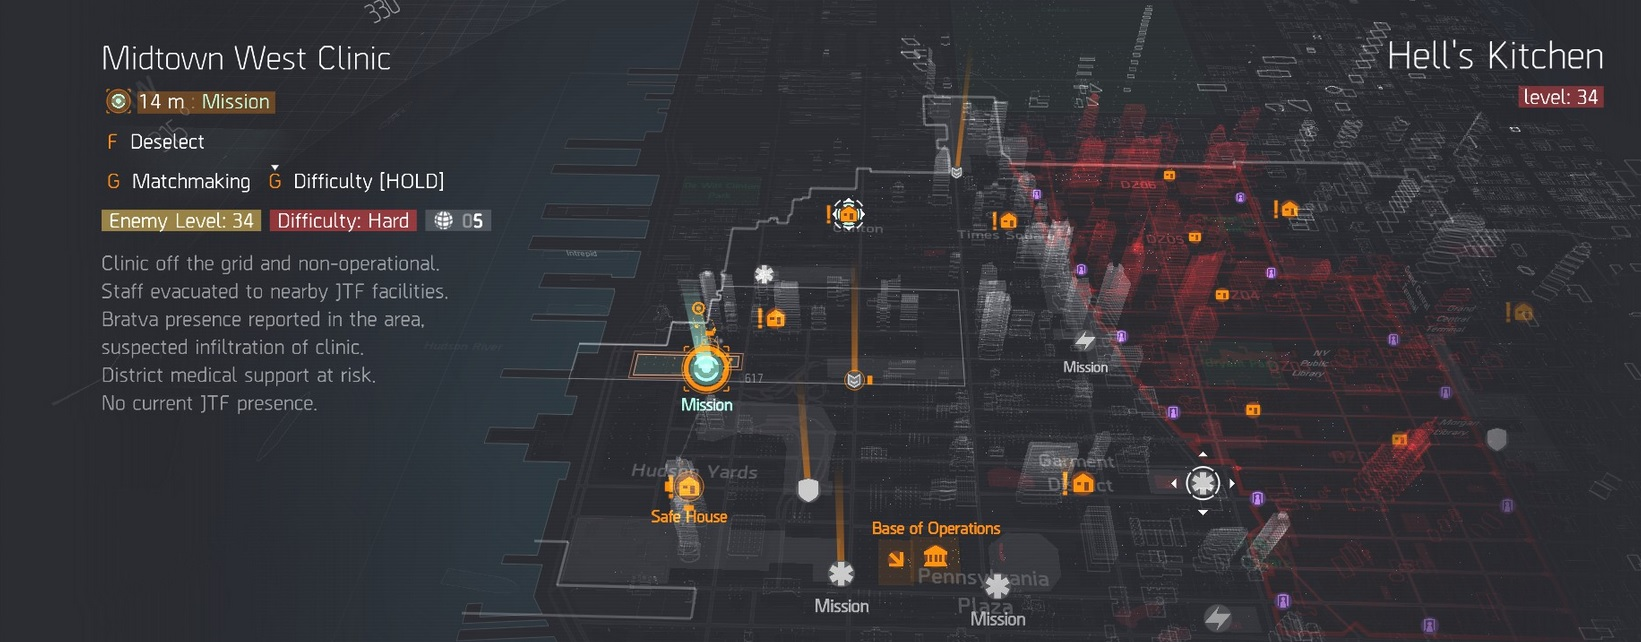 division-map-mission